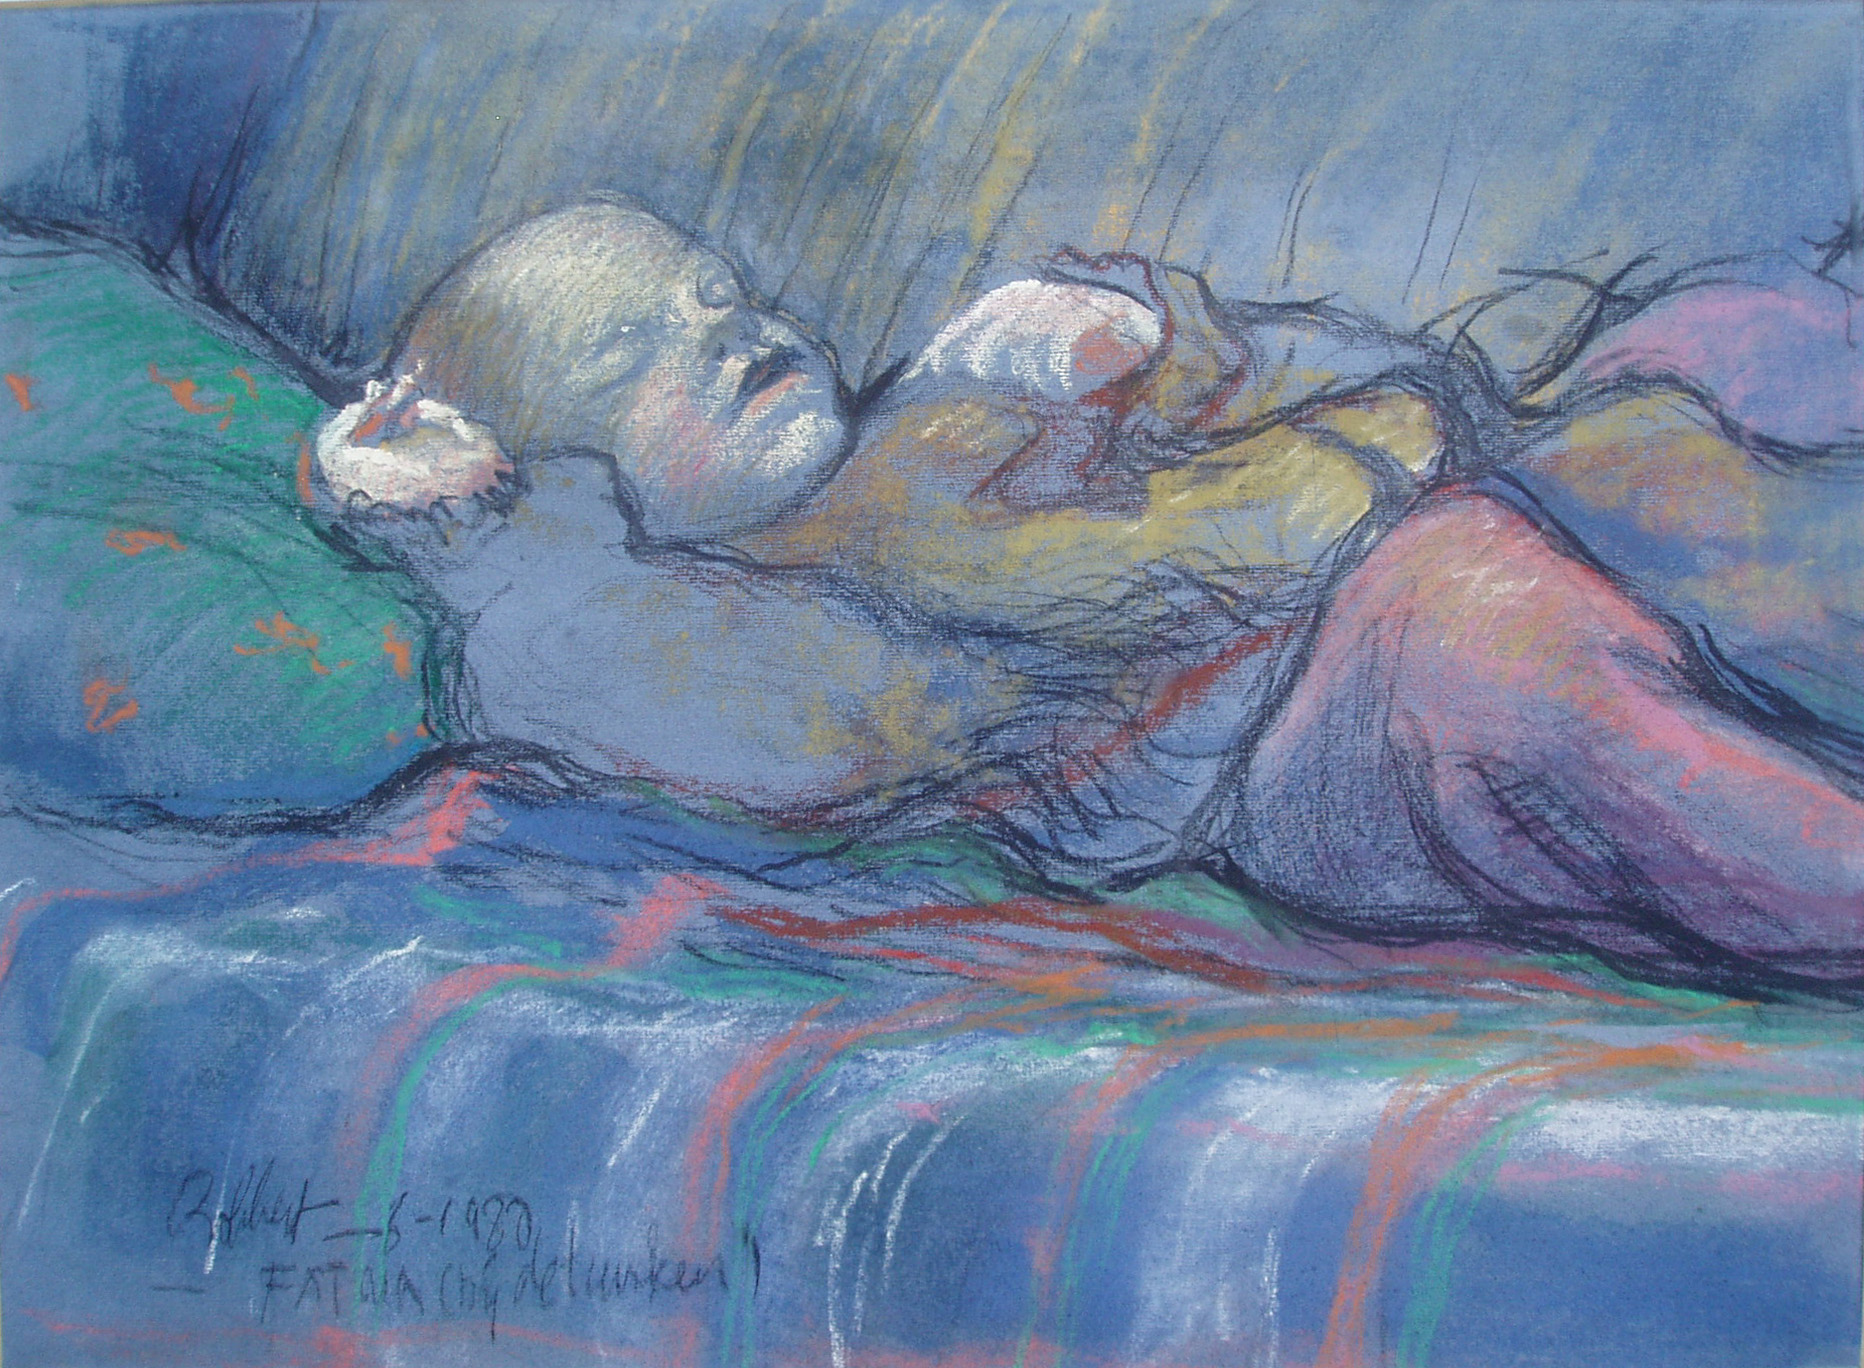 Robbert Ruigrok,'Fatima, Turkish Child', 1980. Pastel.